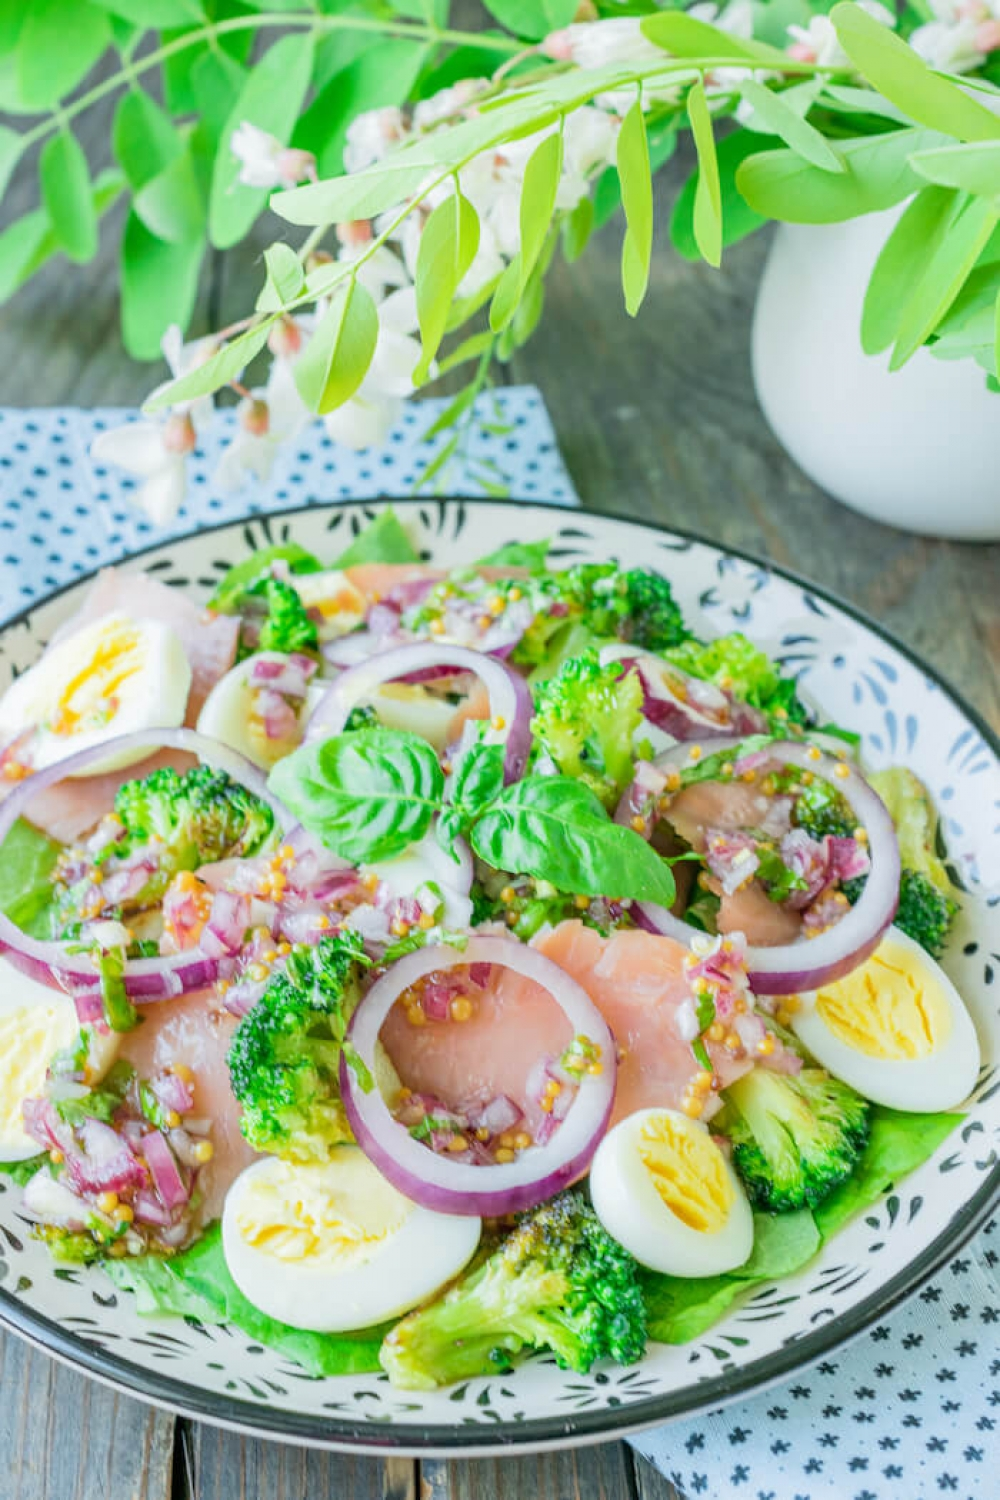 Smoked Pink Salmon Salad with Broccoli and Quail Eggs